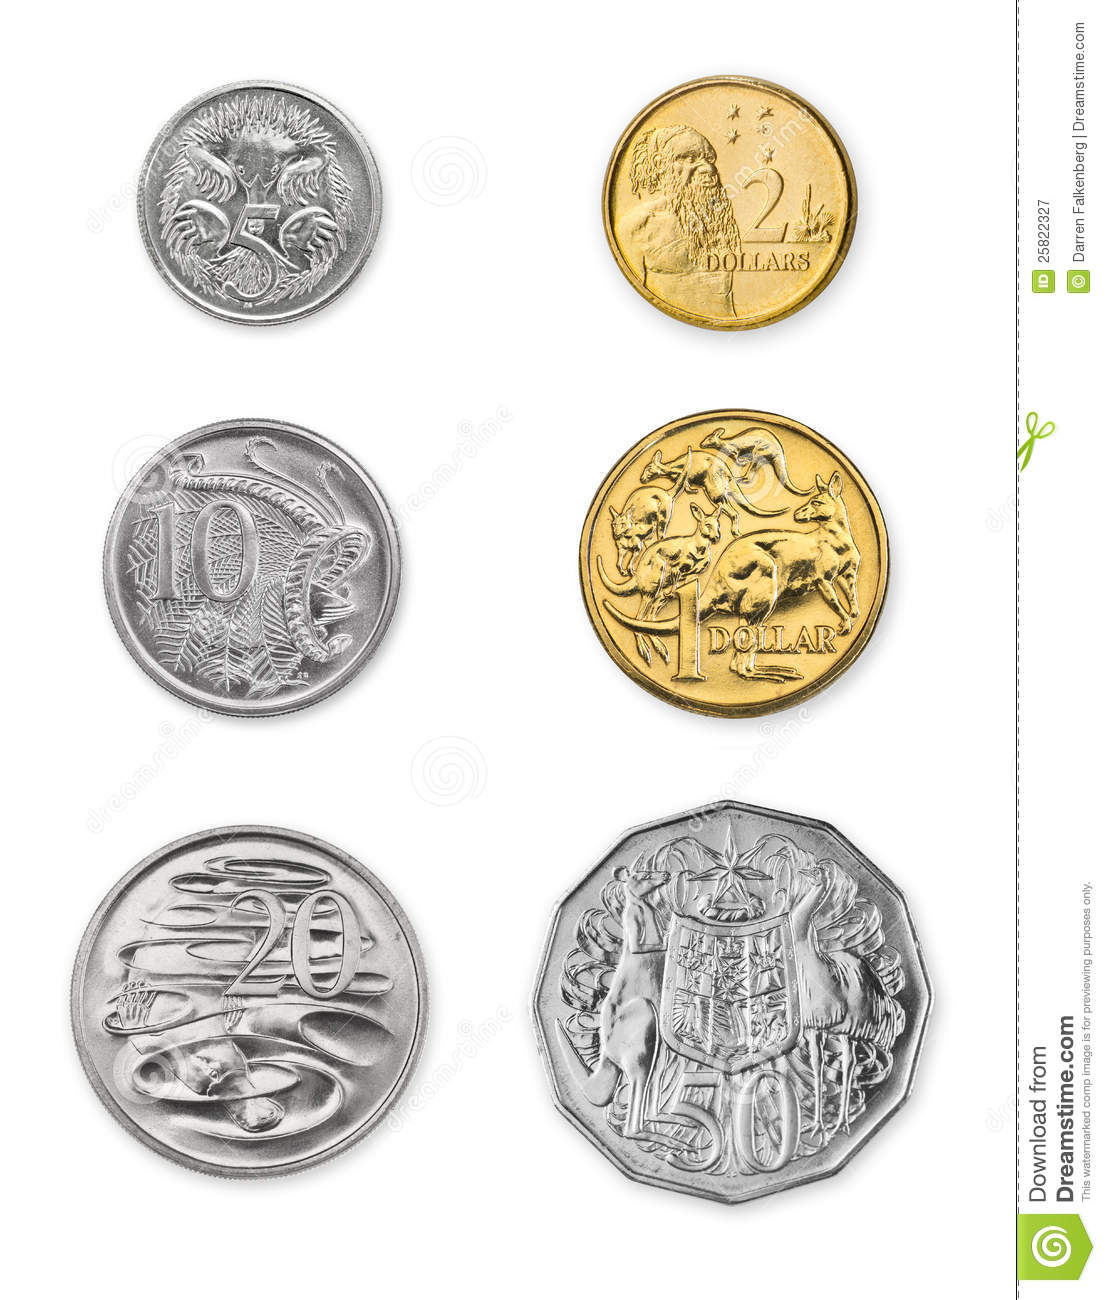 Australian Coins Royalty Free Stock Photography Image